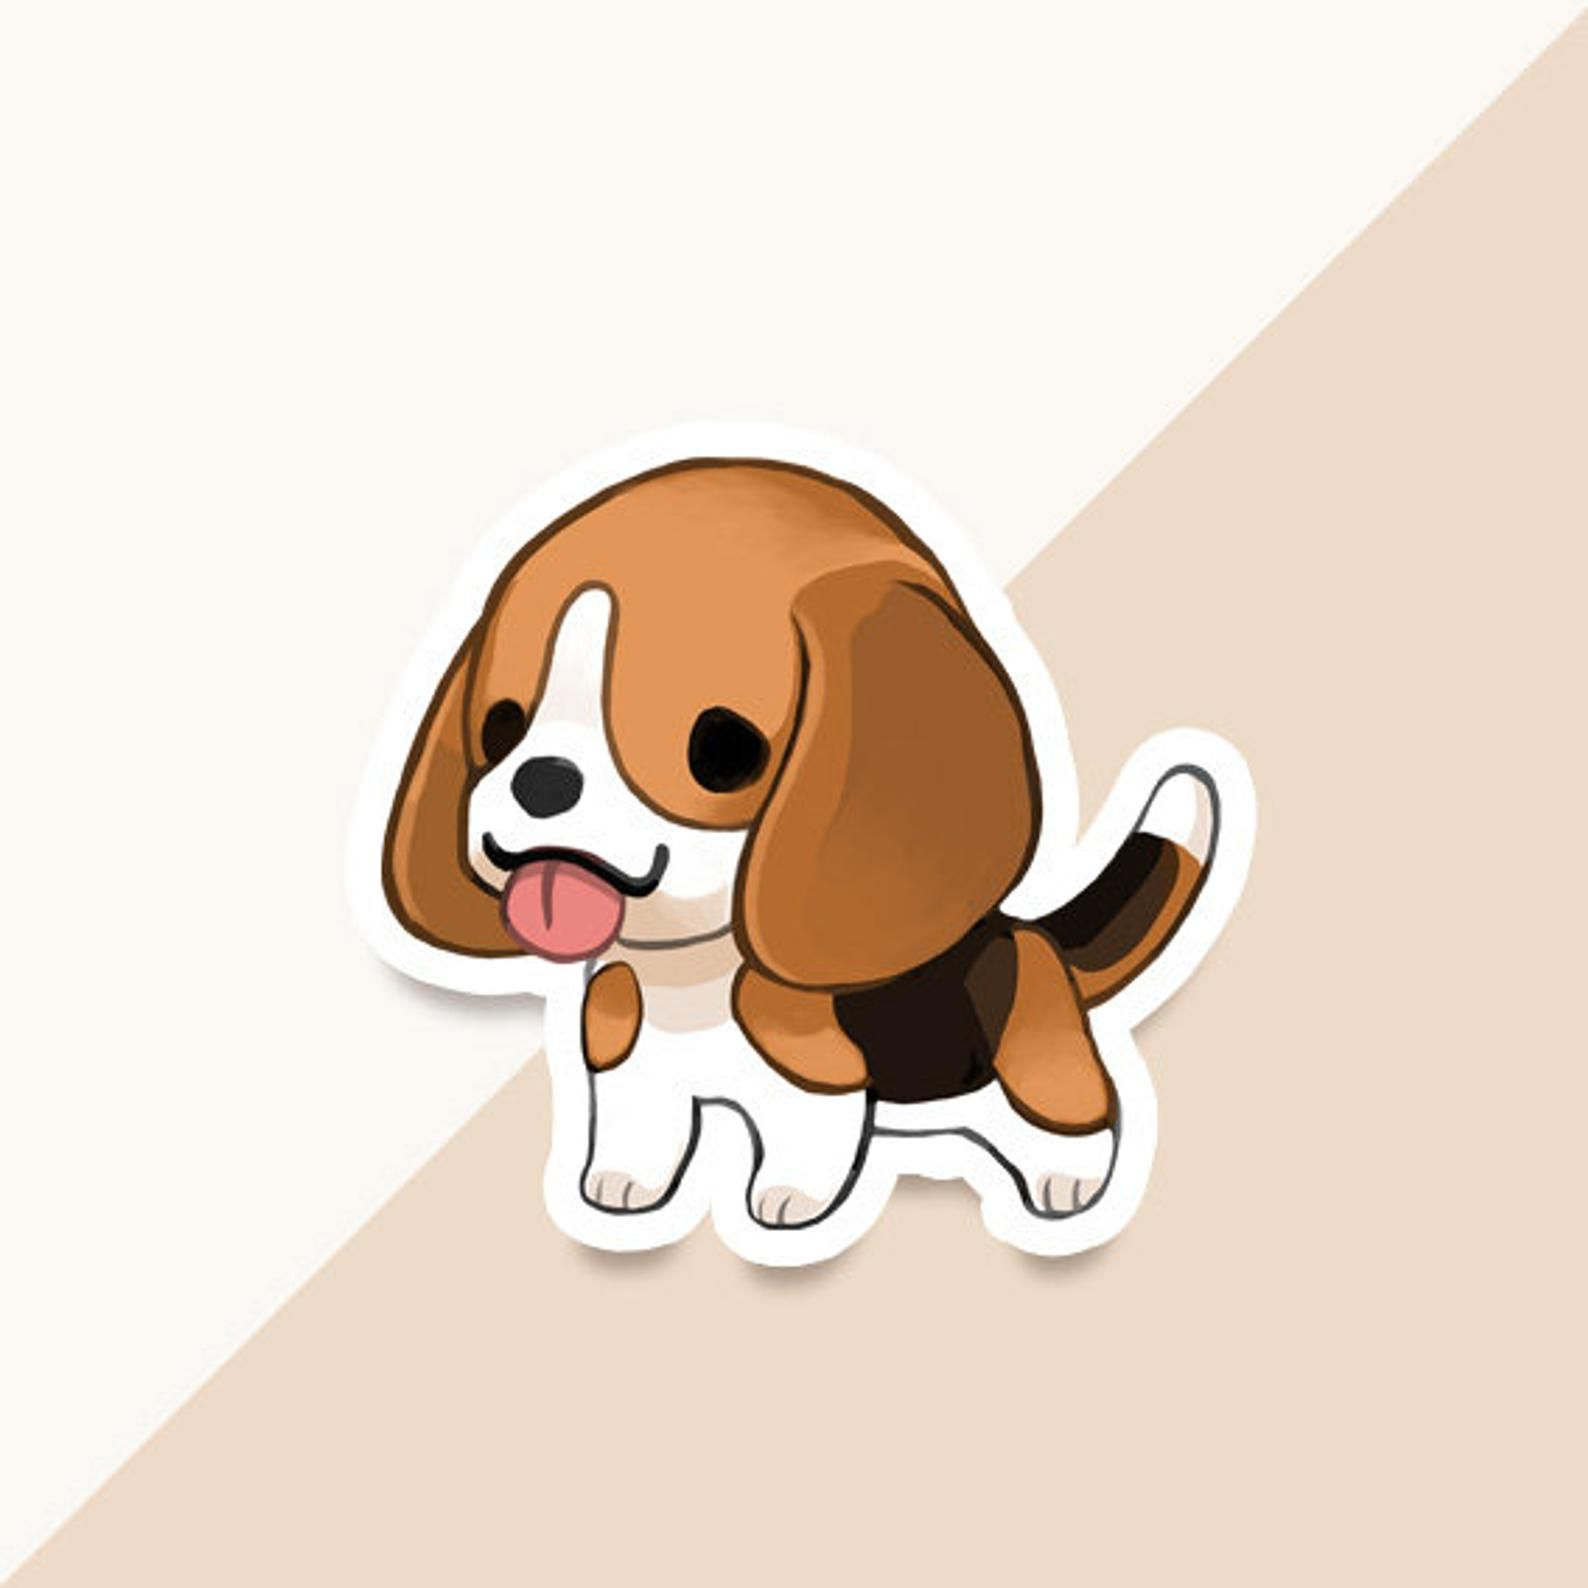 Vinyl Sticker Beagle Etsy In 2020 Cute Dog Cartoon Cute Cartoon Wallpapers Cute Dog Wallpaper